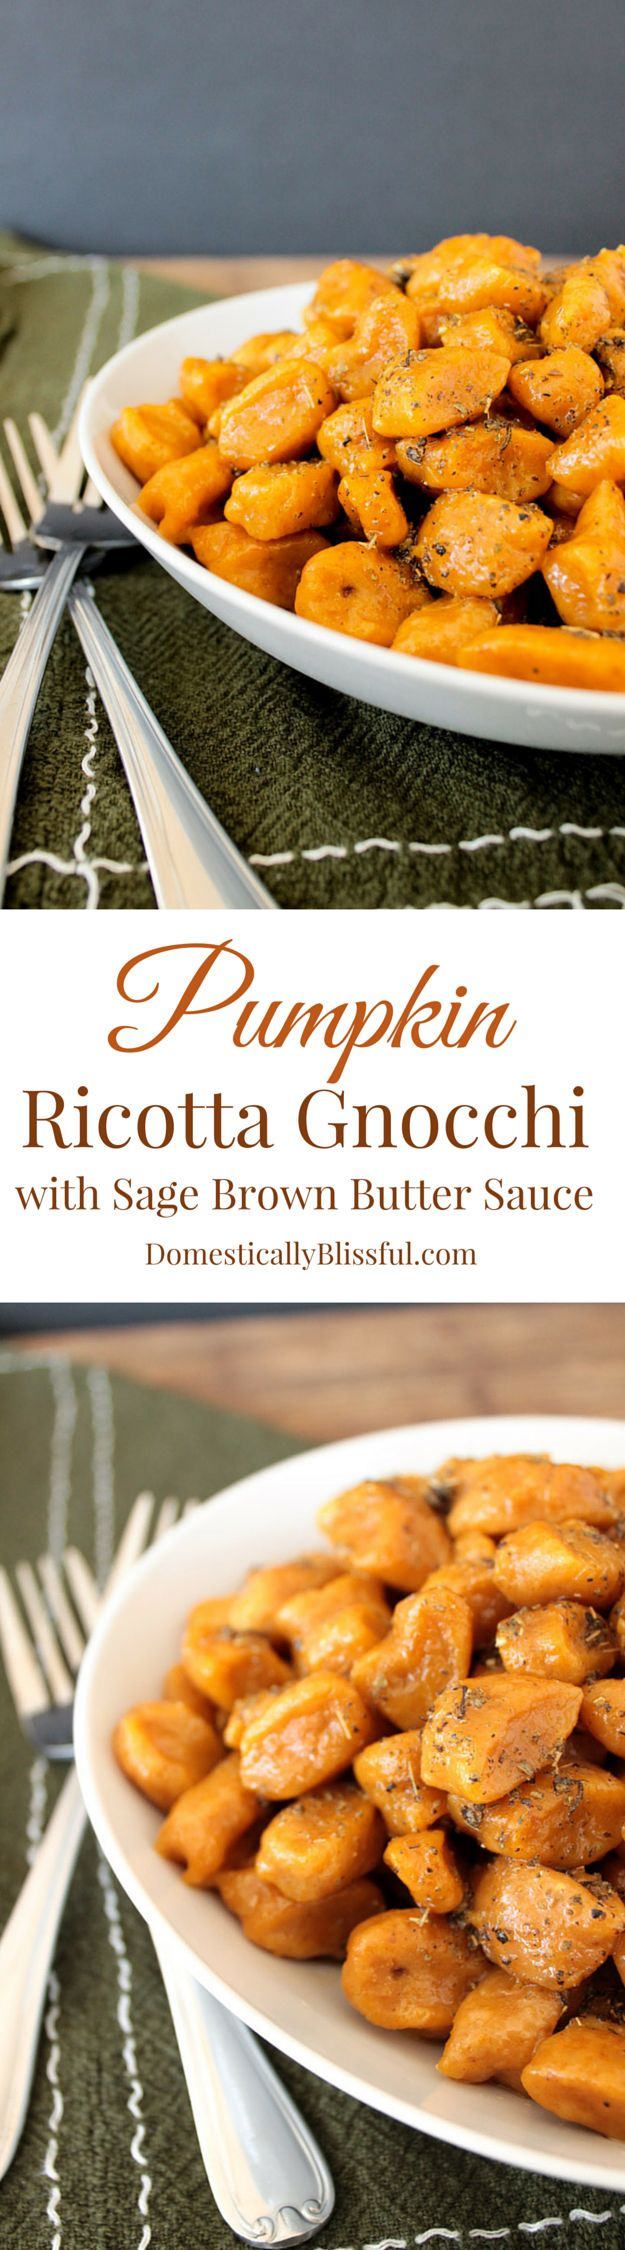 Pumpkin Ricotta Gnocchi with Sage Brown Butter Sauce recipe from Domestically Blissful